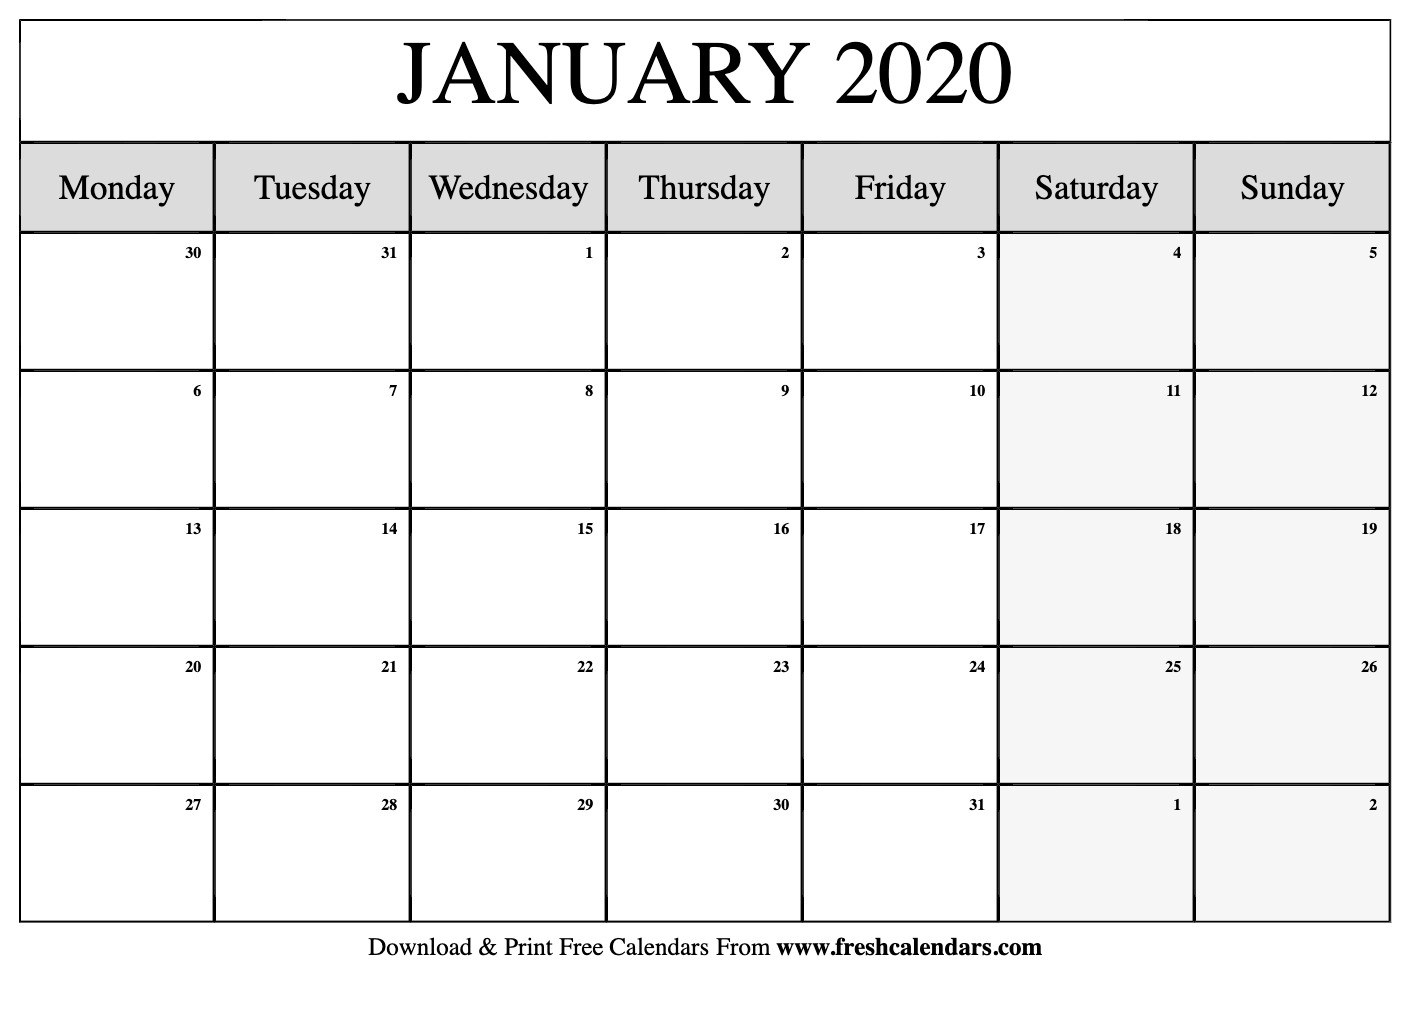 Free Printable January 2020 Calendars throughout 2020 Monthly Calendar Monday Start Printable Free